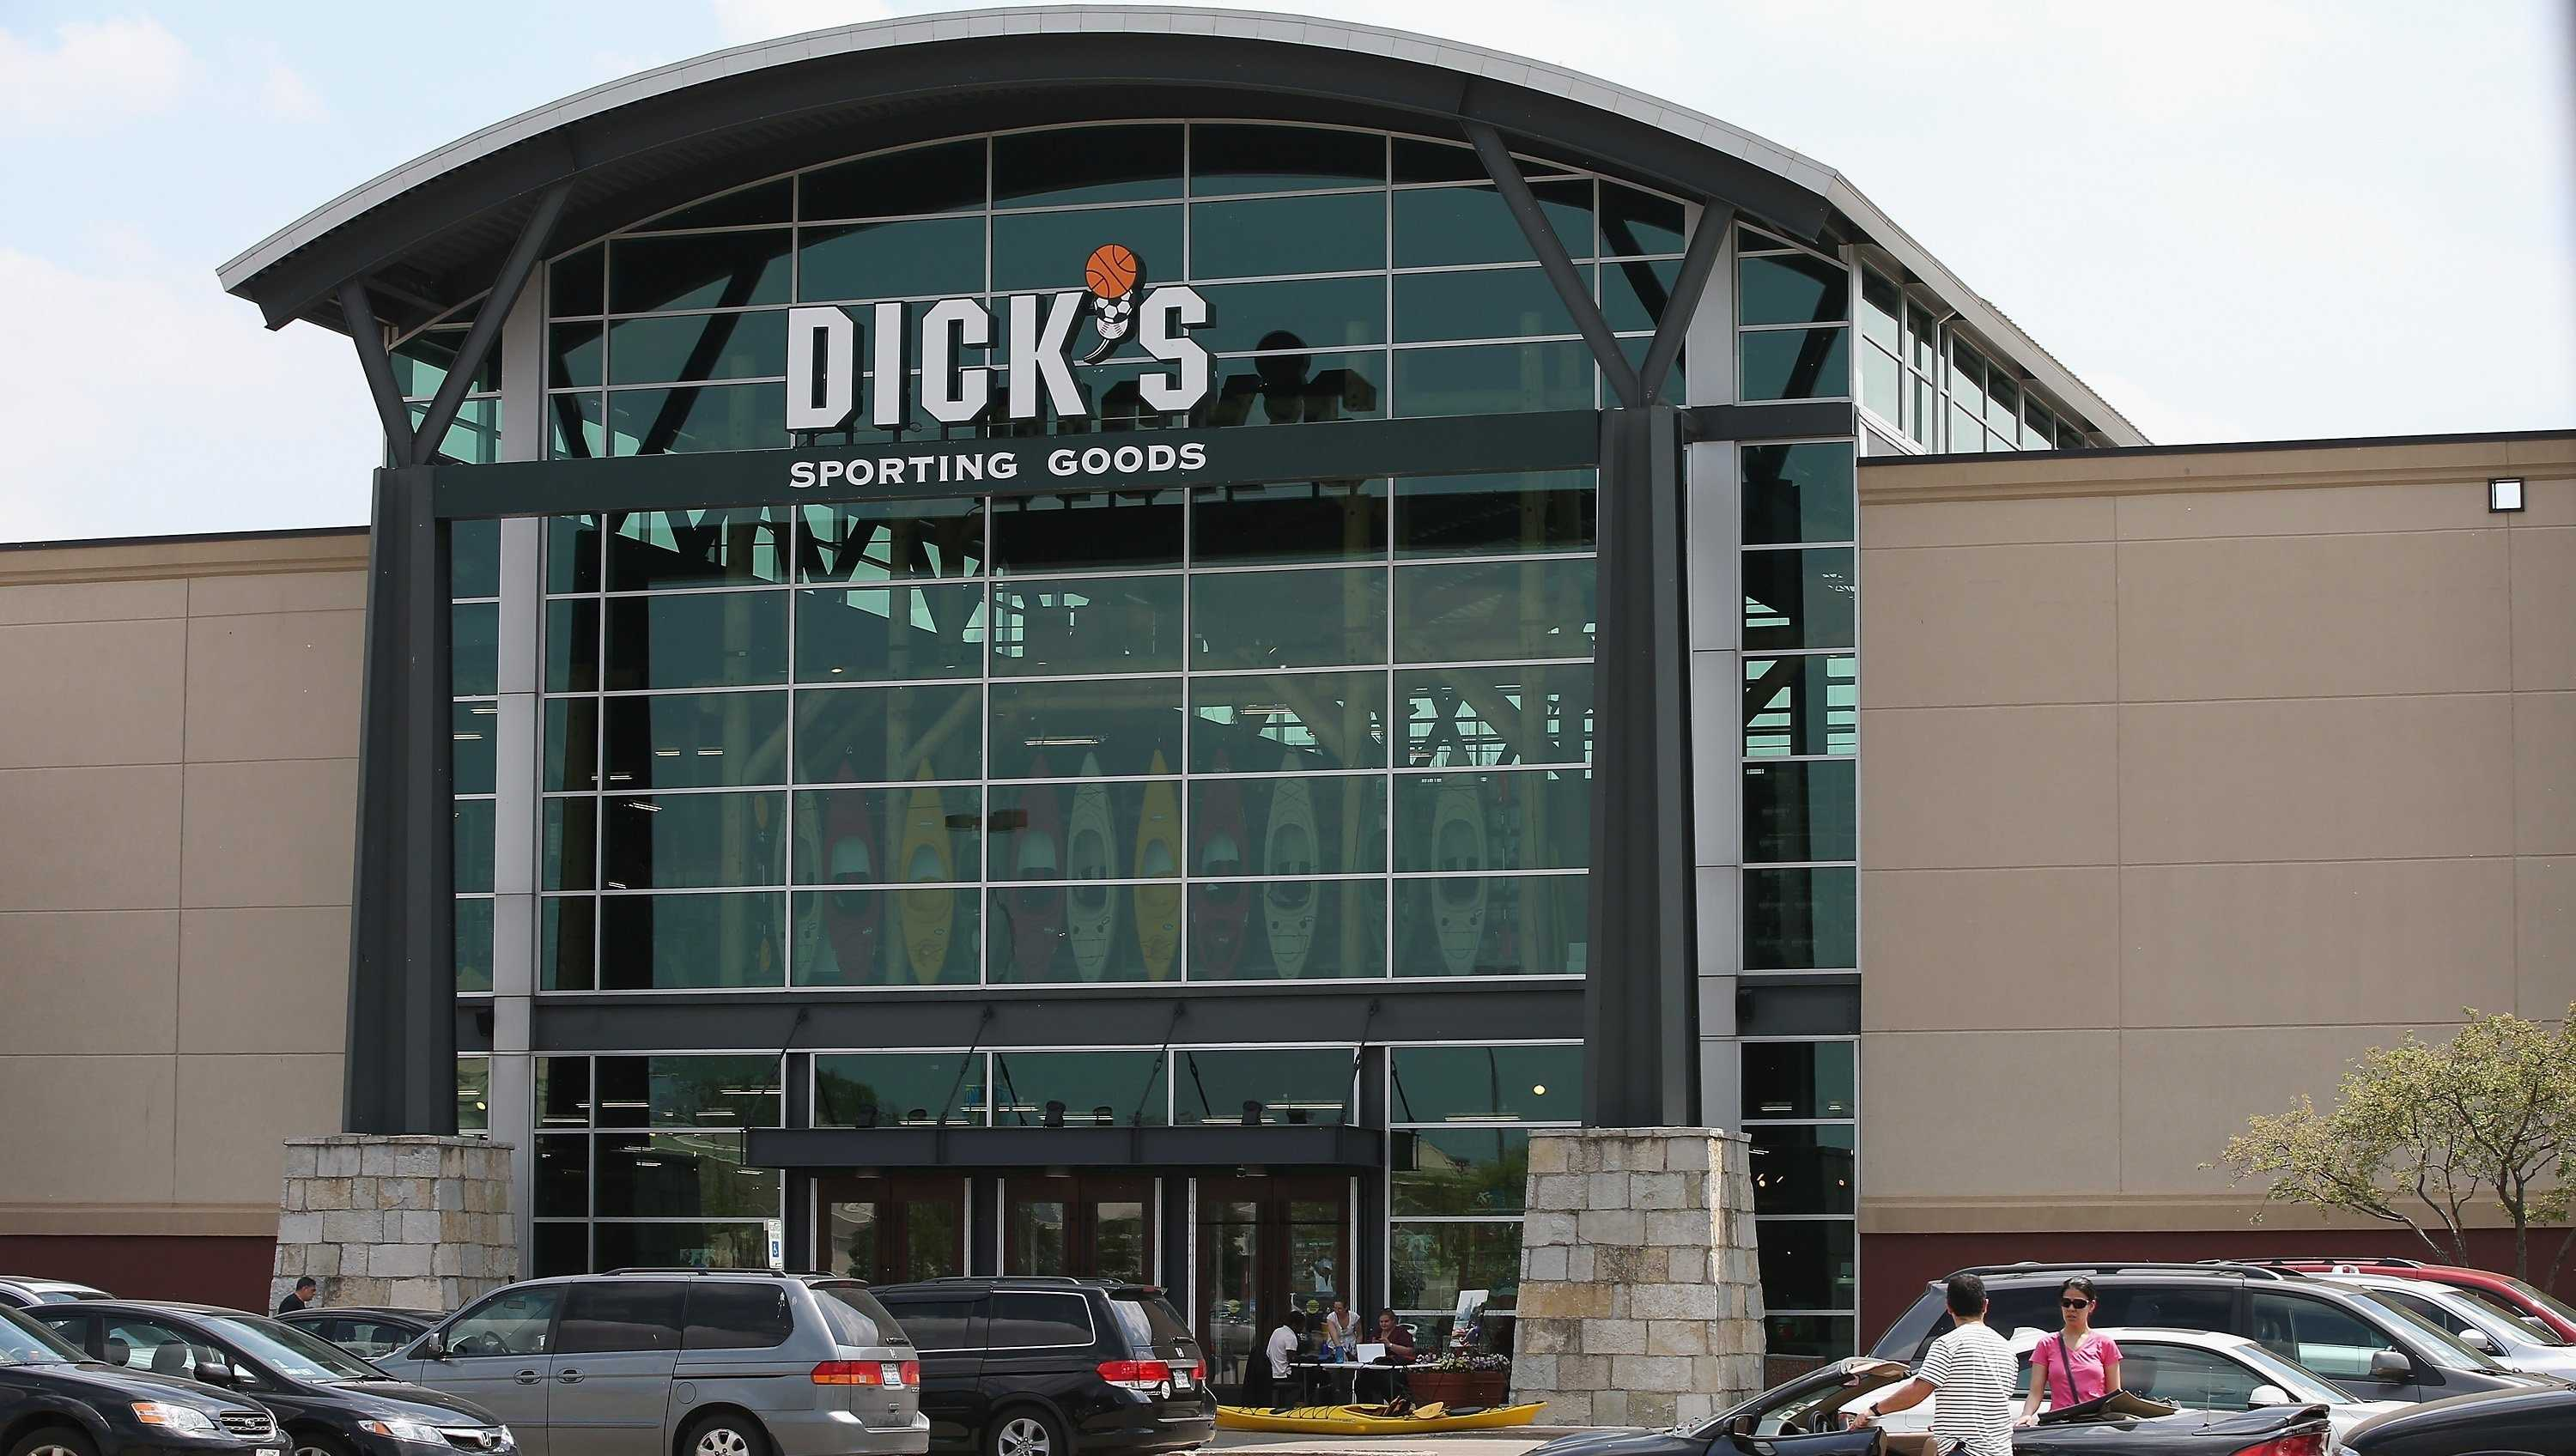 Dick's Sporting Goods stock price surged by as much as 27% after it reported stronger than expected quarterly sales and profit Wednesday.